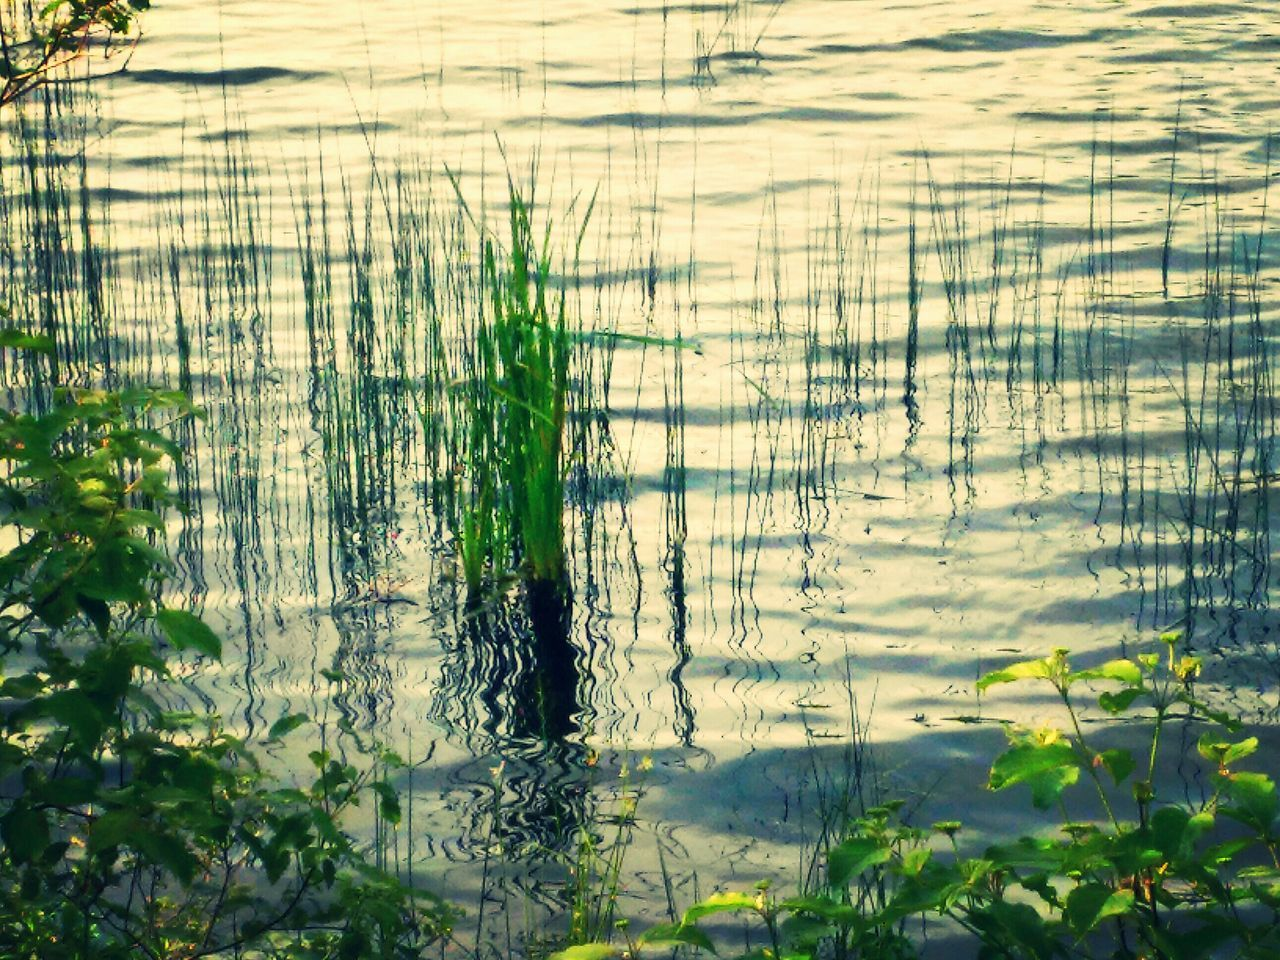 nature, growth, plant, no people, day, tranquility, beauty in nature, tranquil scene, outdoors, grass, water, scenics, tree